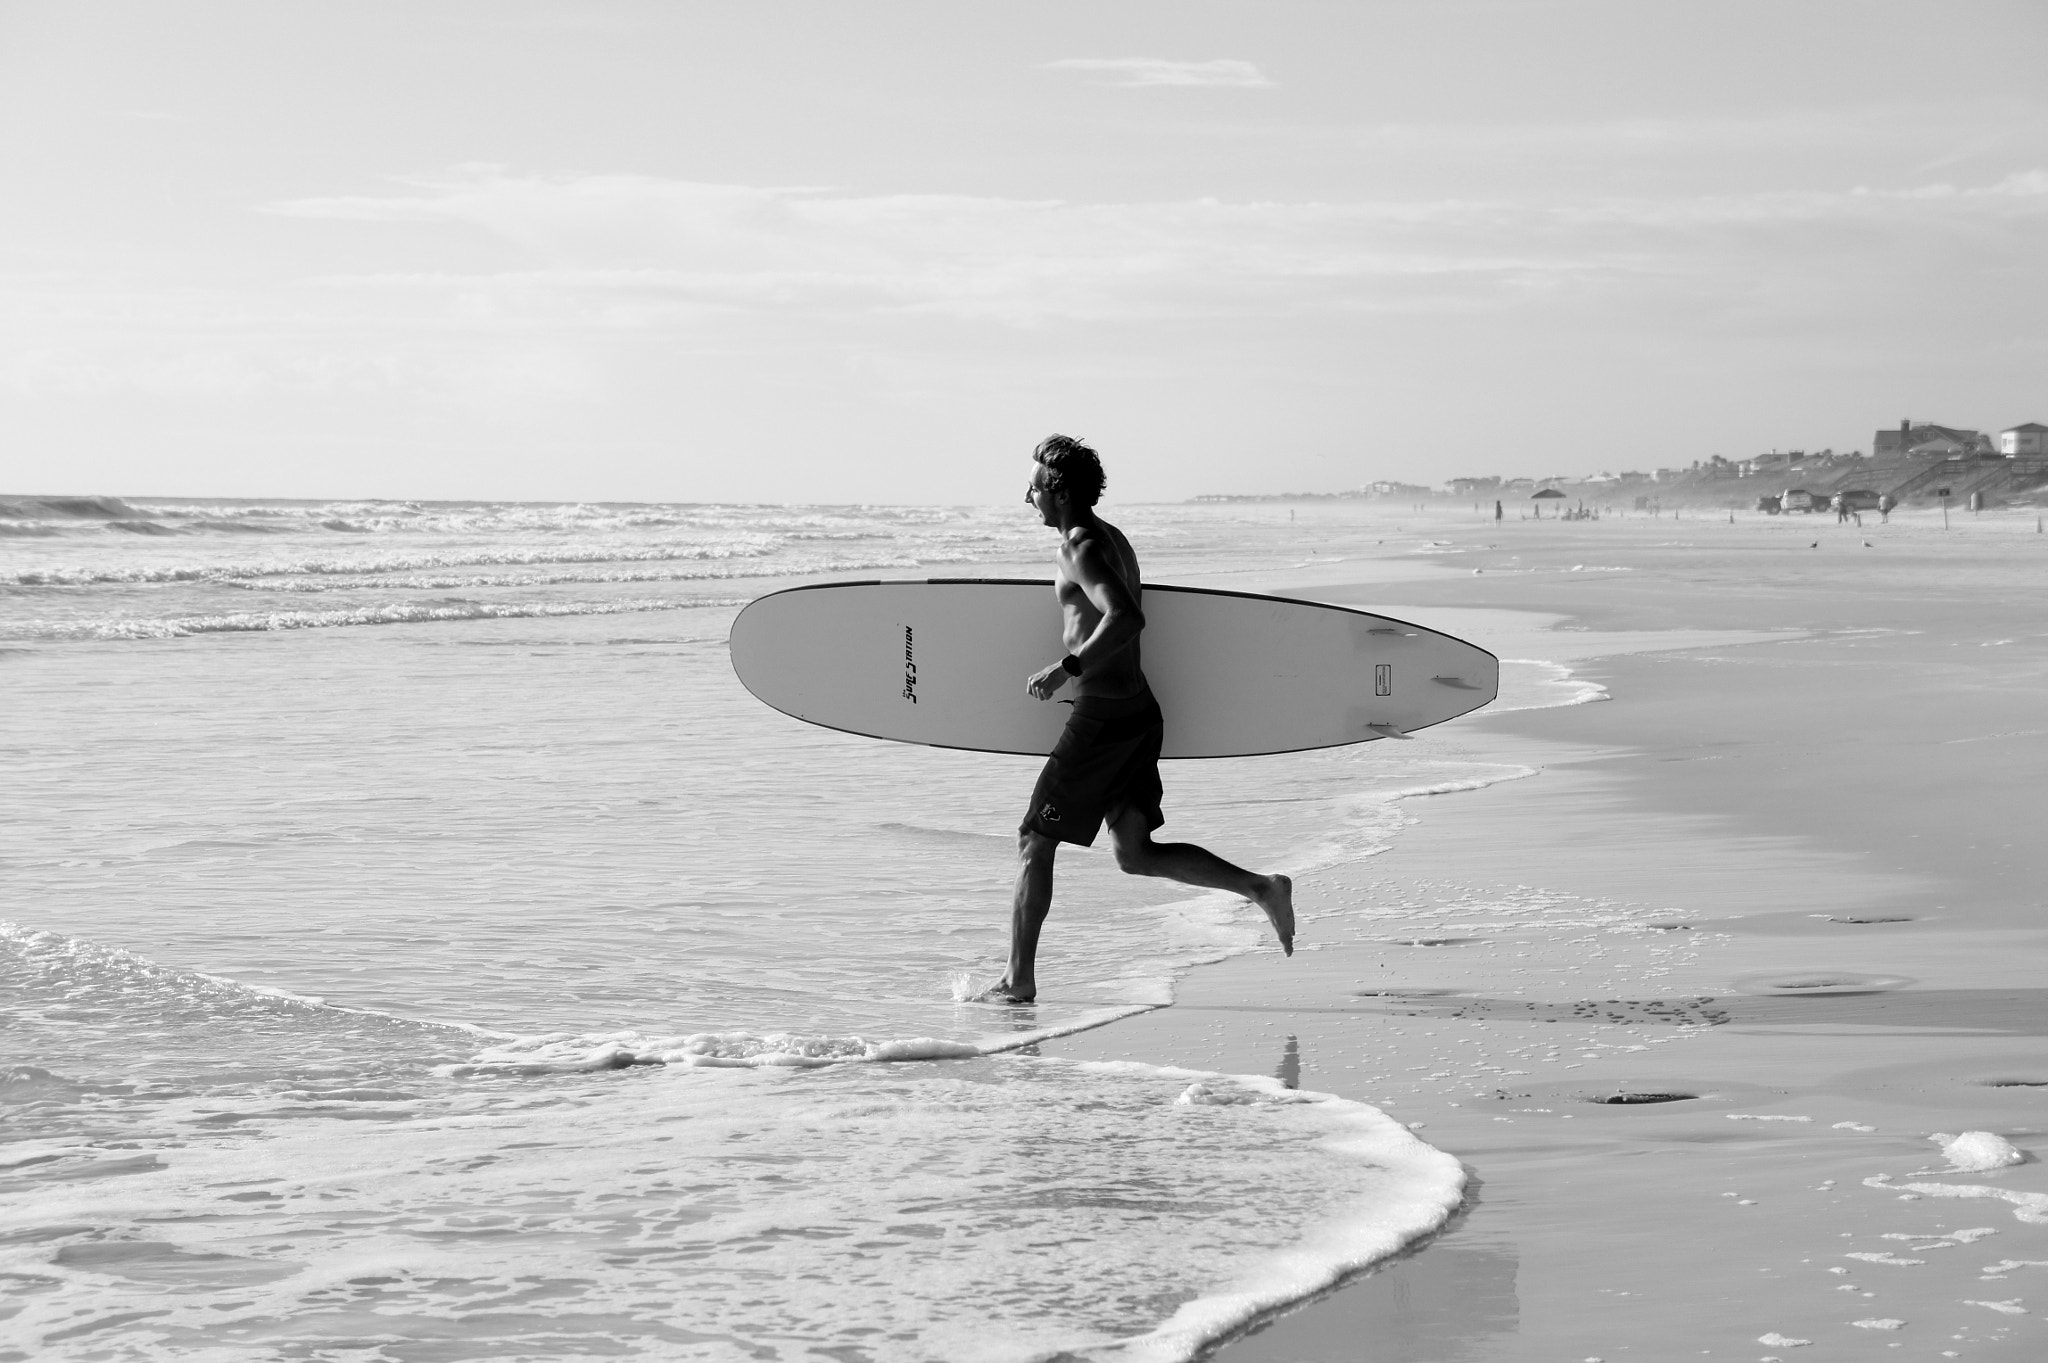 Photograph Stoked on life by matthew pagels on 500px